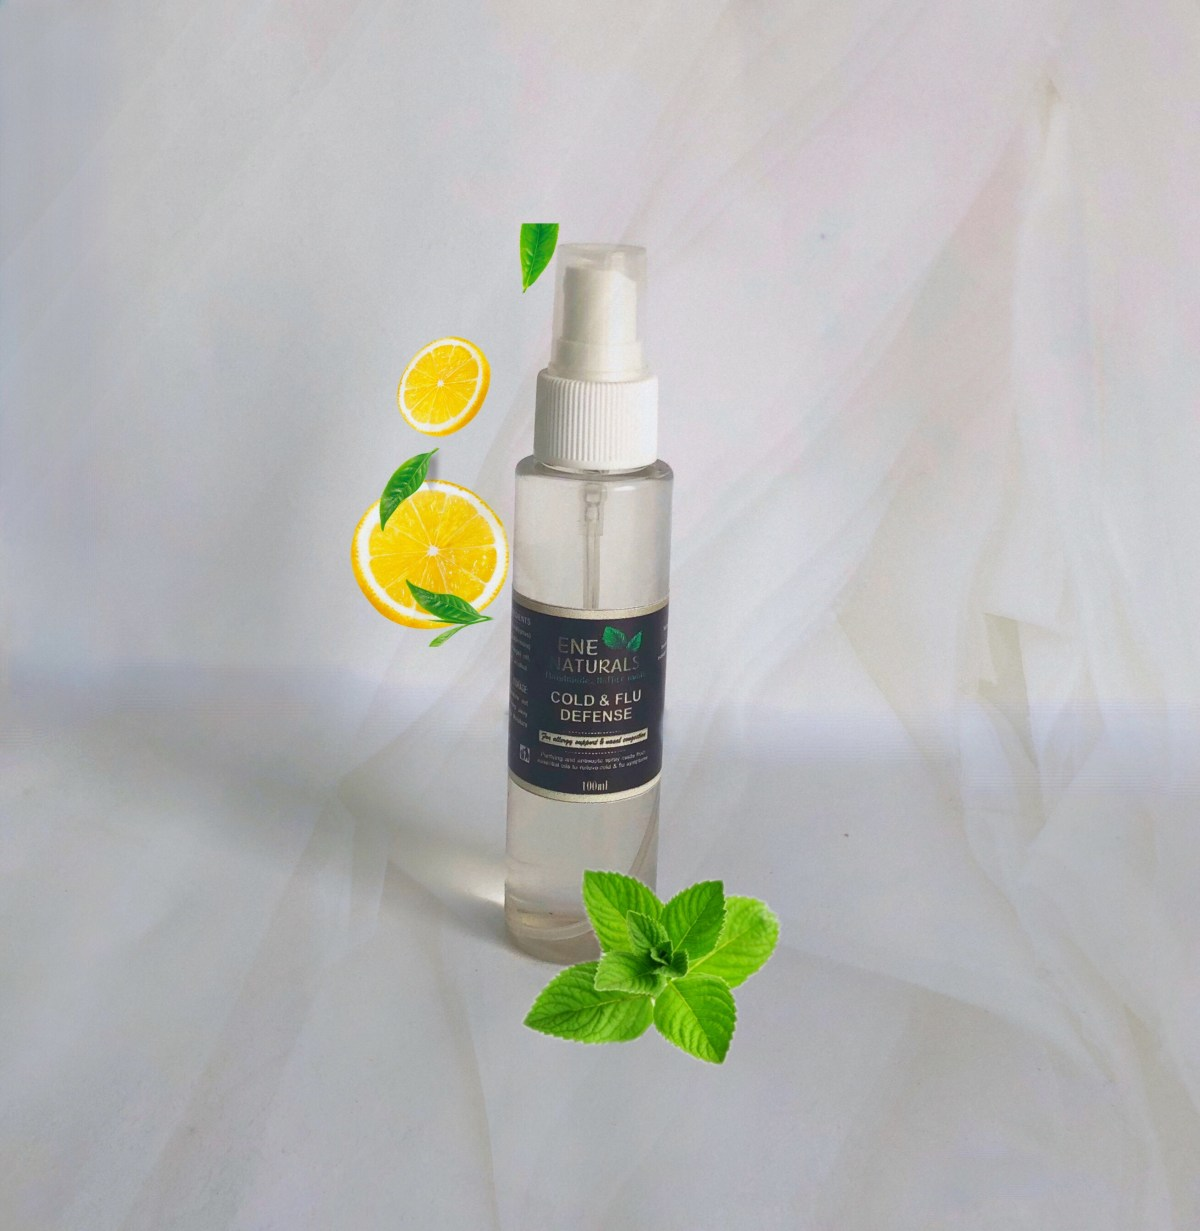 Spray for cold and flu